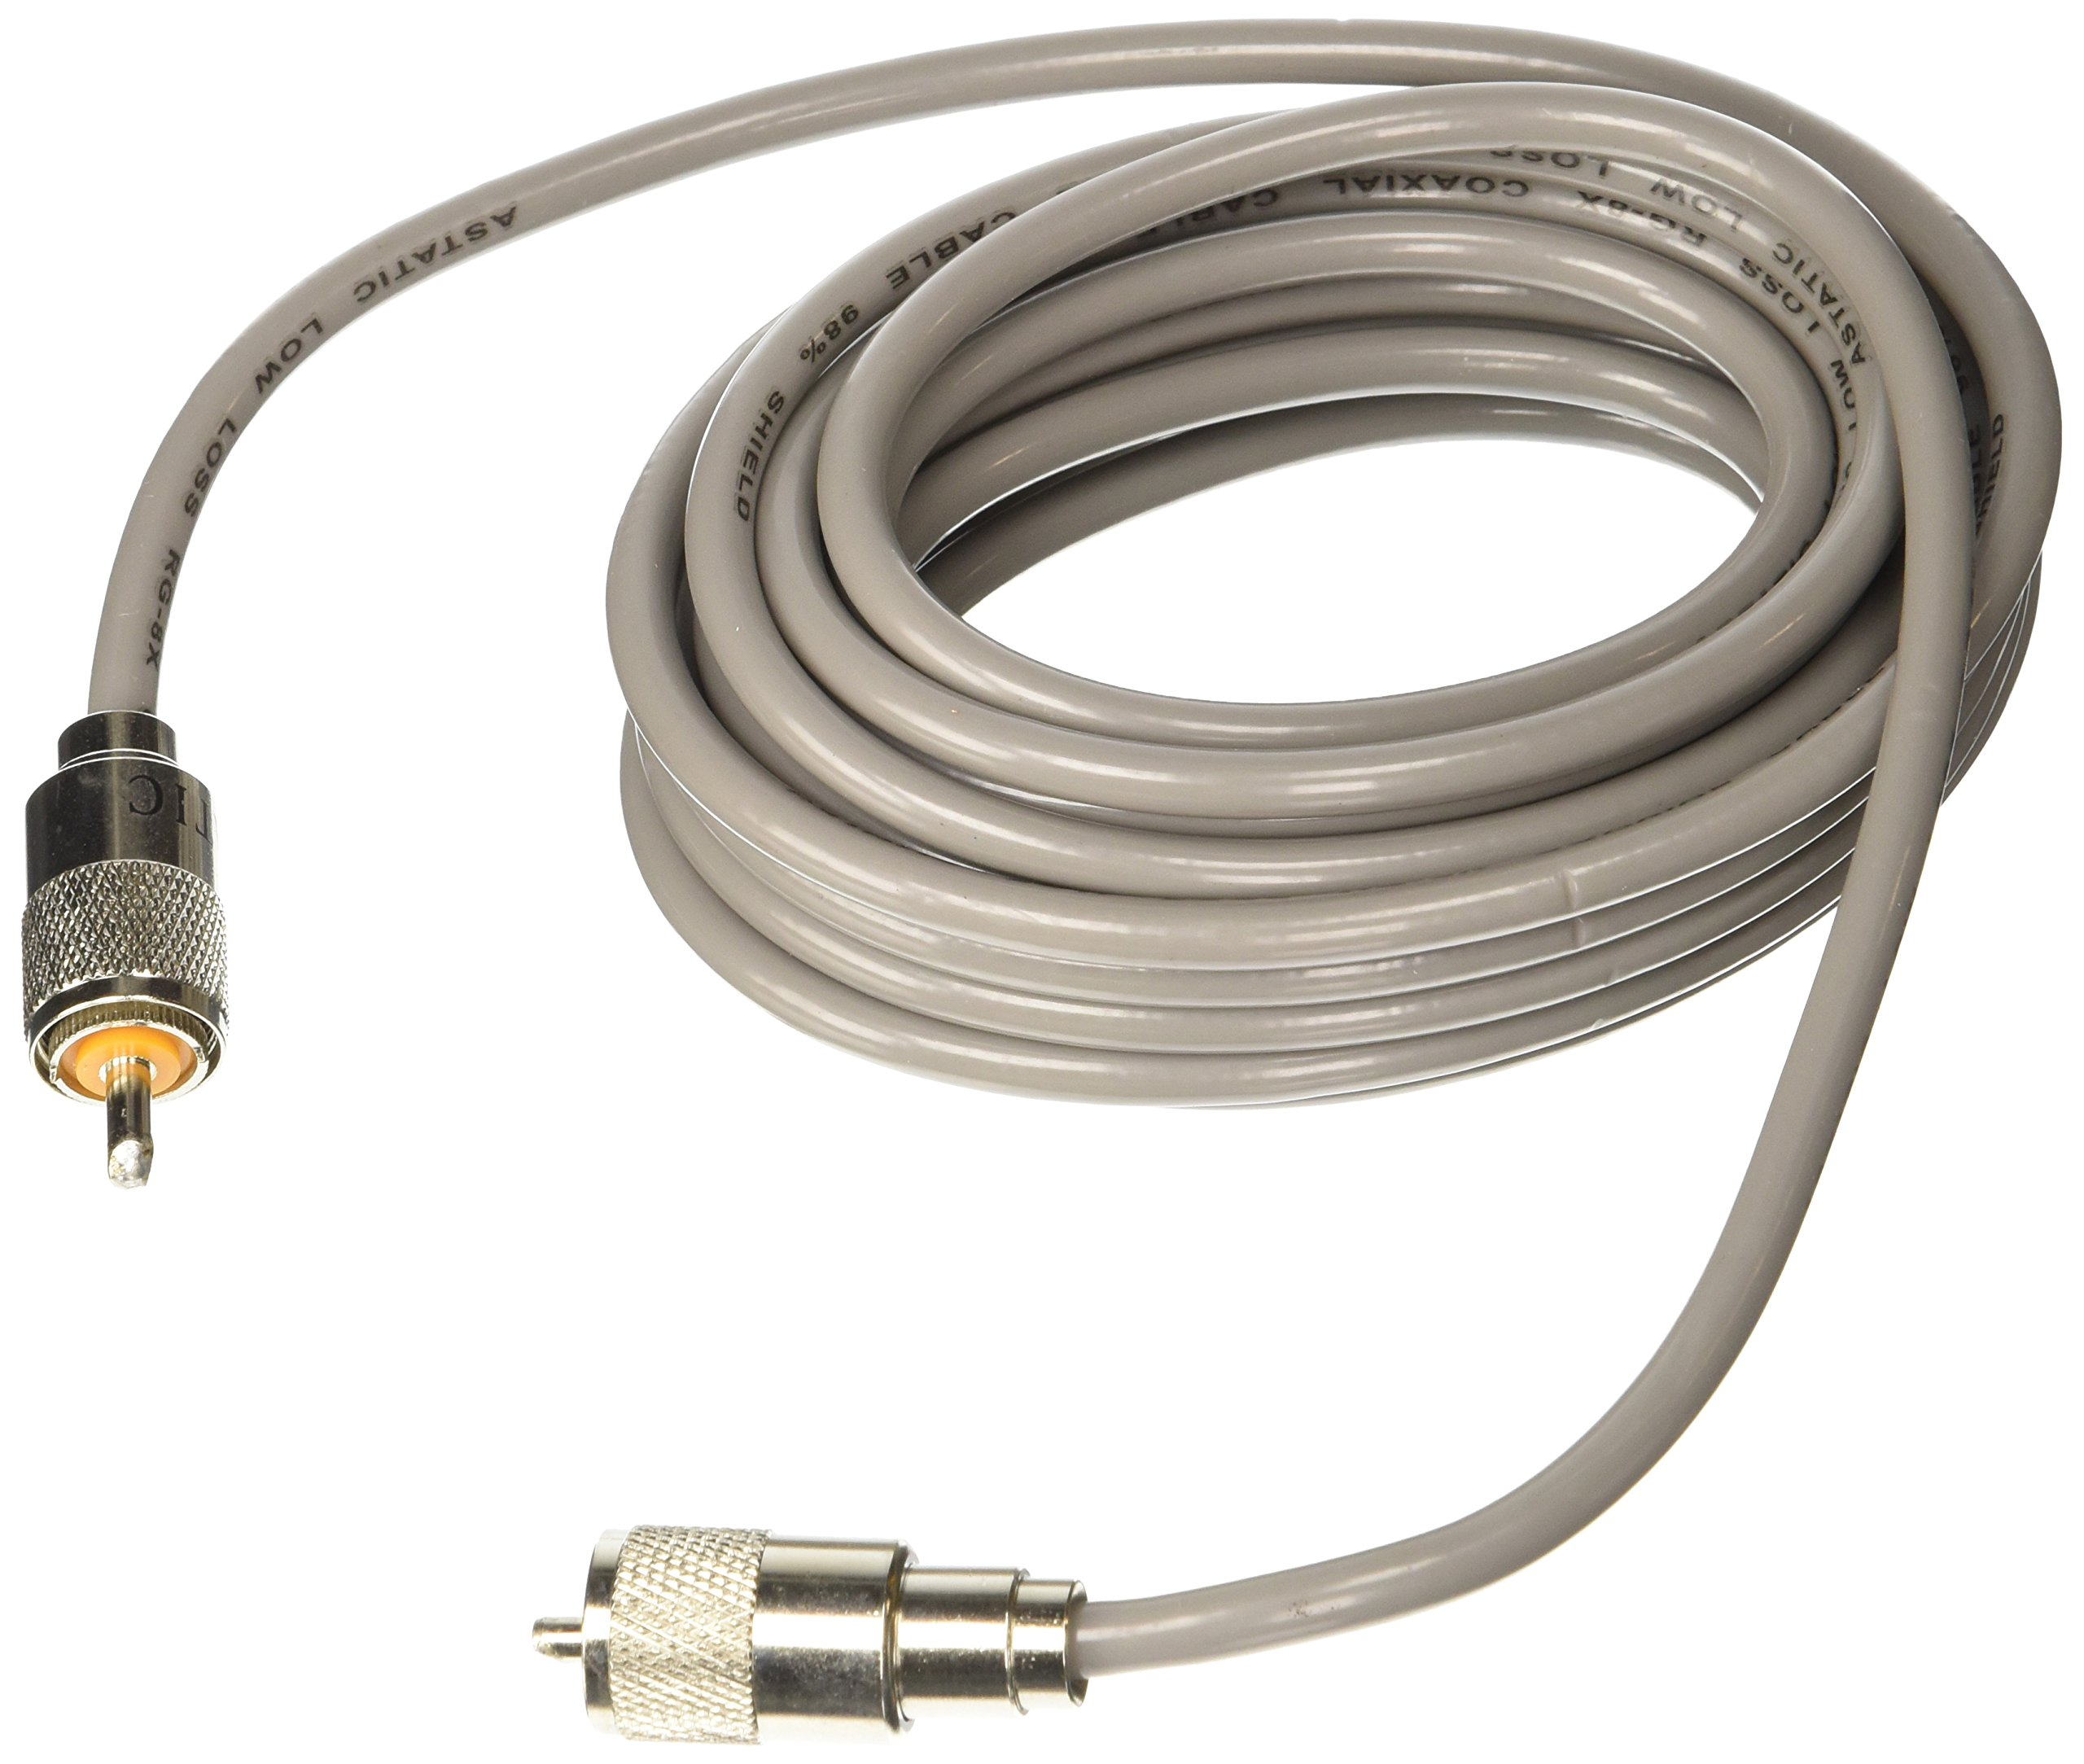 Astatic 302-10267 Gray 18' Mini 8 Coaxial Cable by Astatic